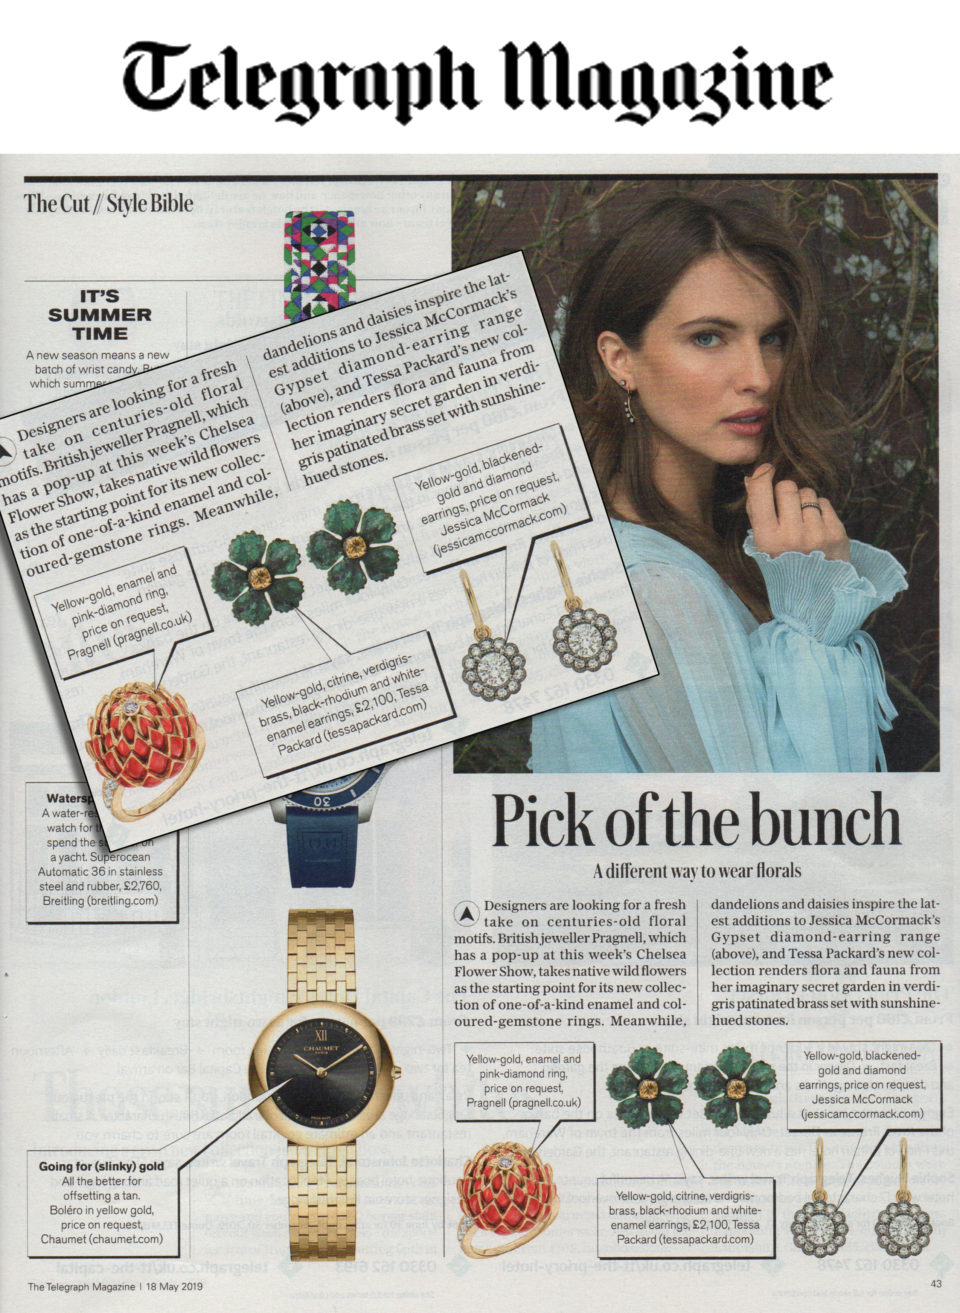 18 ct Yellow Gold Rhodium, Verdigris Brass and Citrine Earrings by Tessa Packard London Contemporary fine Jewellery featured in Telegraph Magazine May 2019 Issue